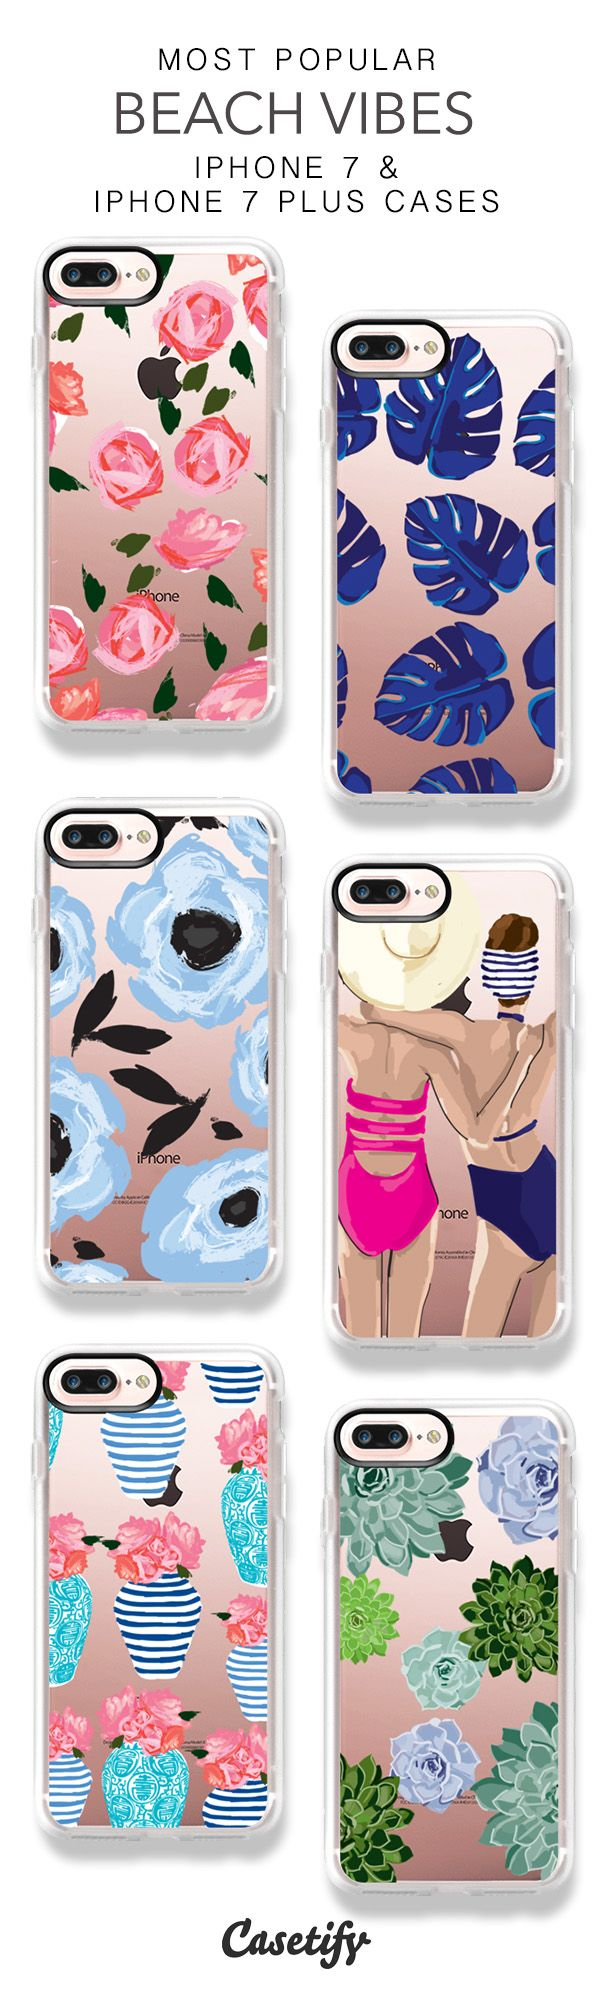 Most Popular Beach Vibes iPhone 7 Cases & iPhone 7 Plus Cases here > https://www.casetify.com/carolinefrierson/collection